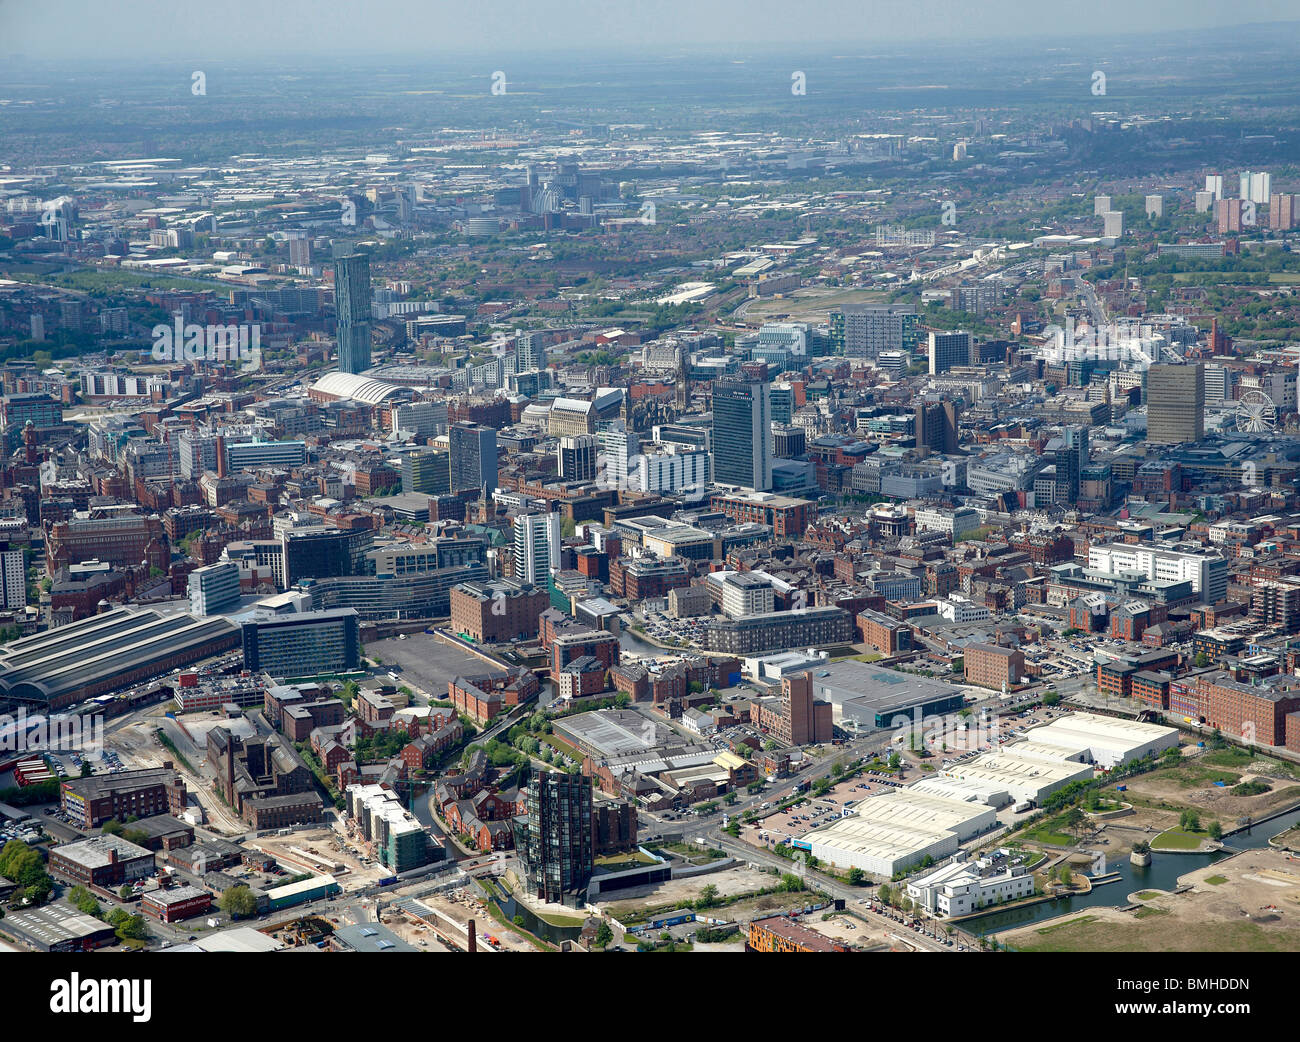 Manchester City Centre from the Air, North West England Stock Photo